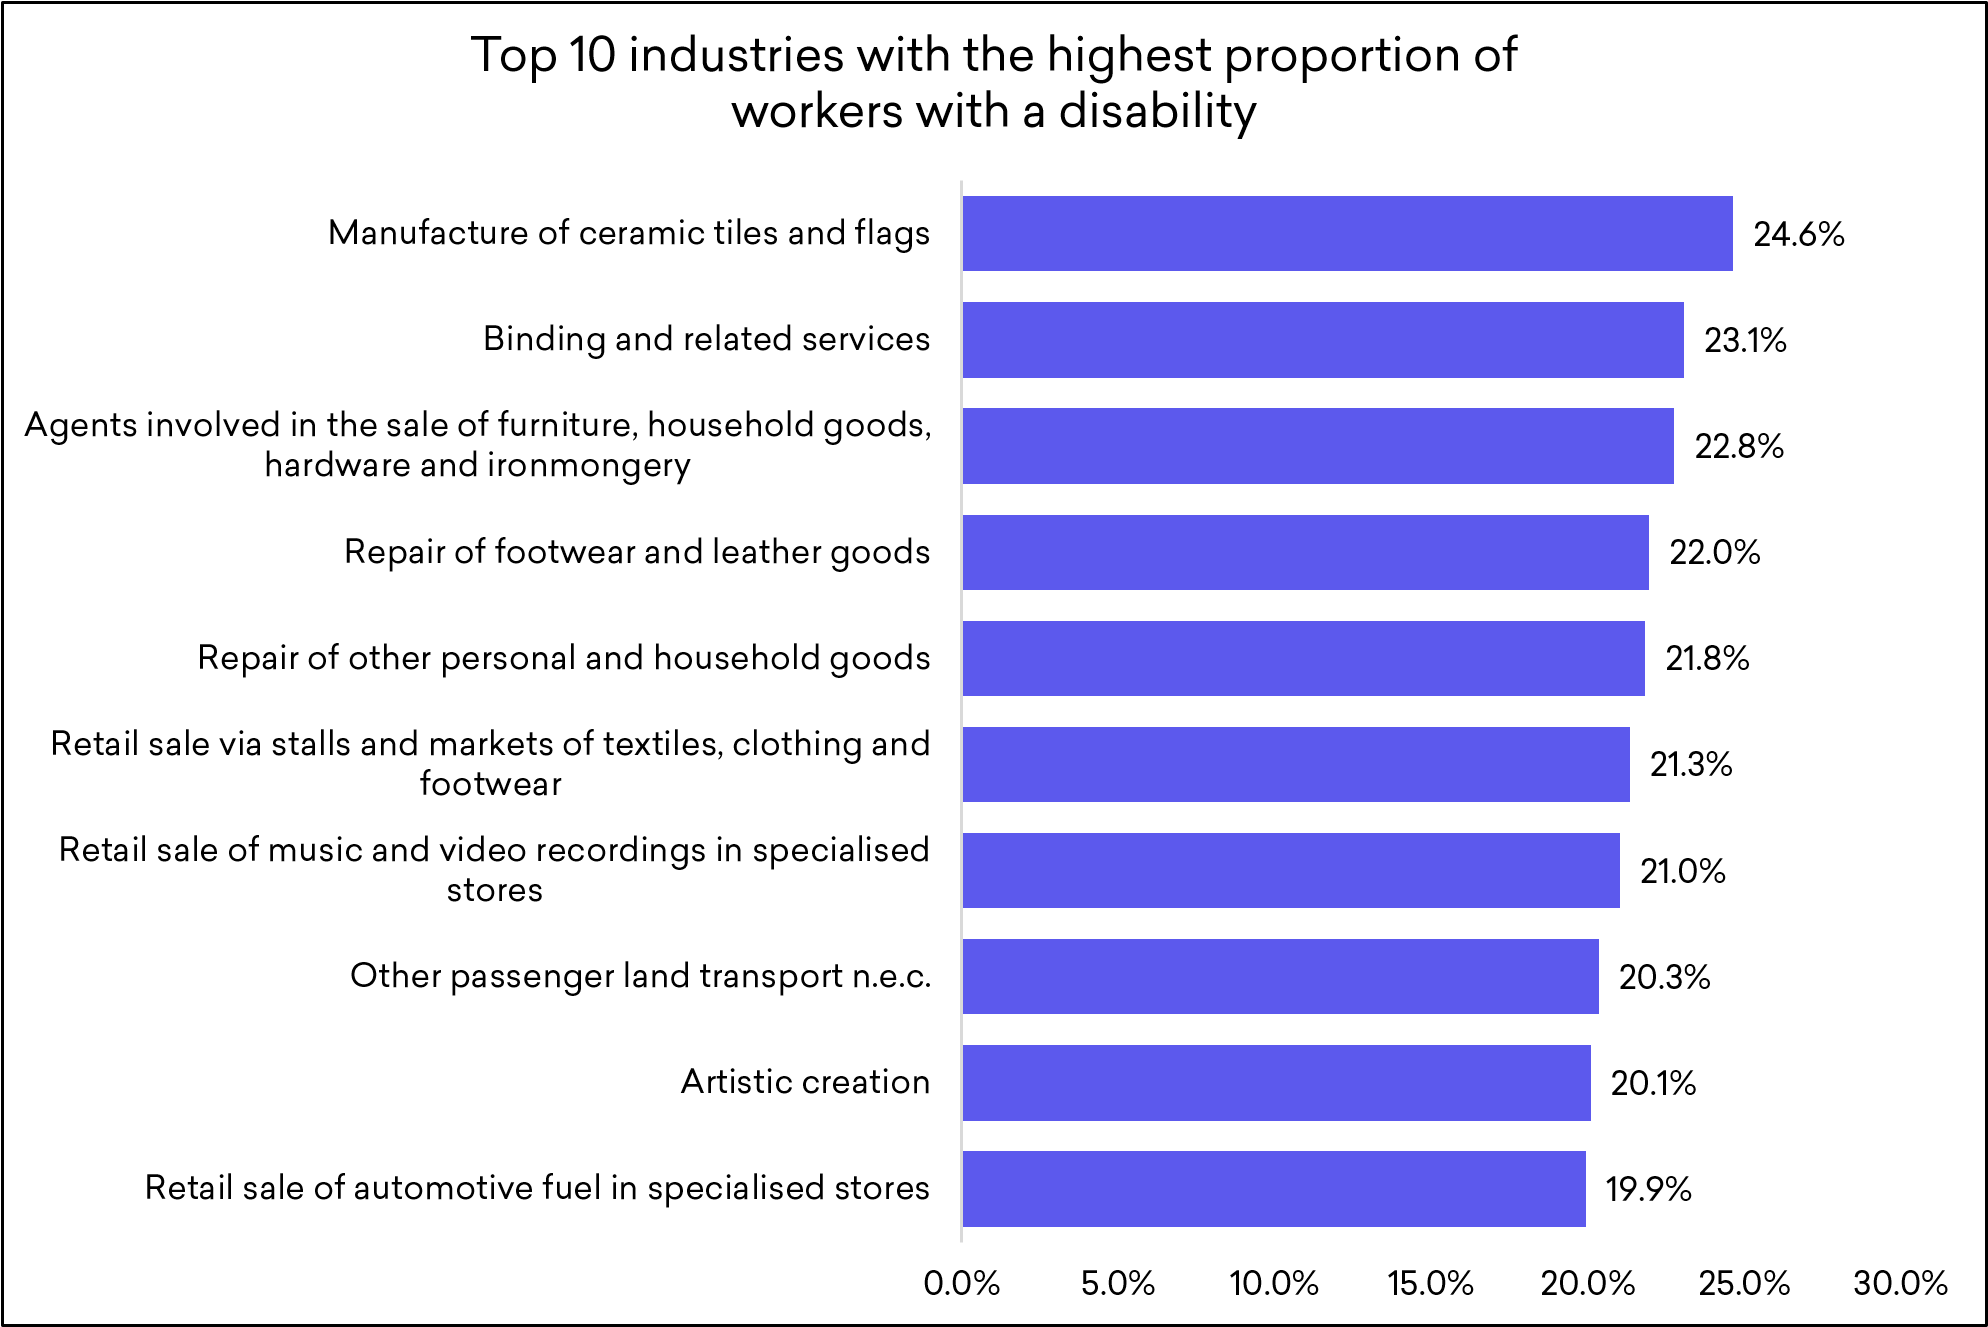 Top 10 industries with the highest proportion of workers with a disability